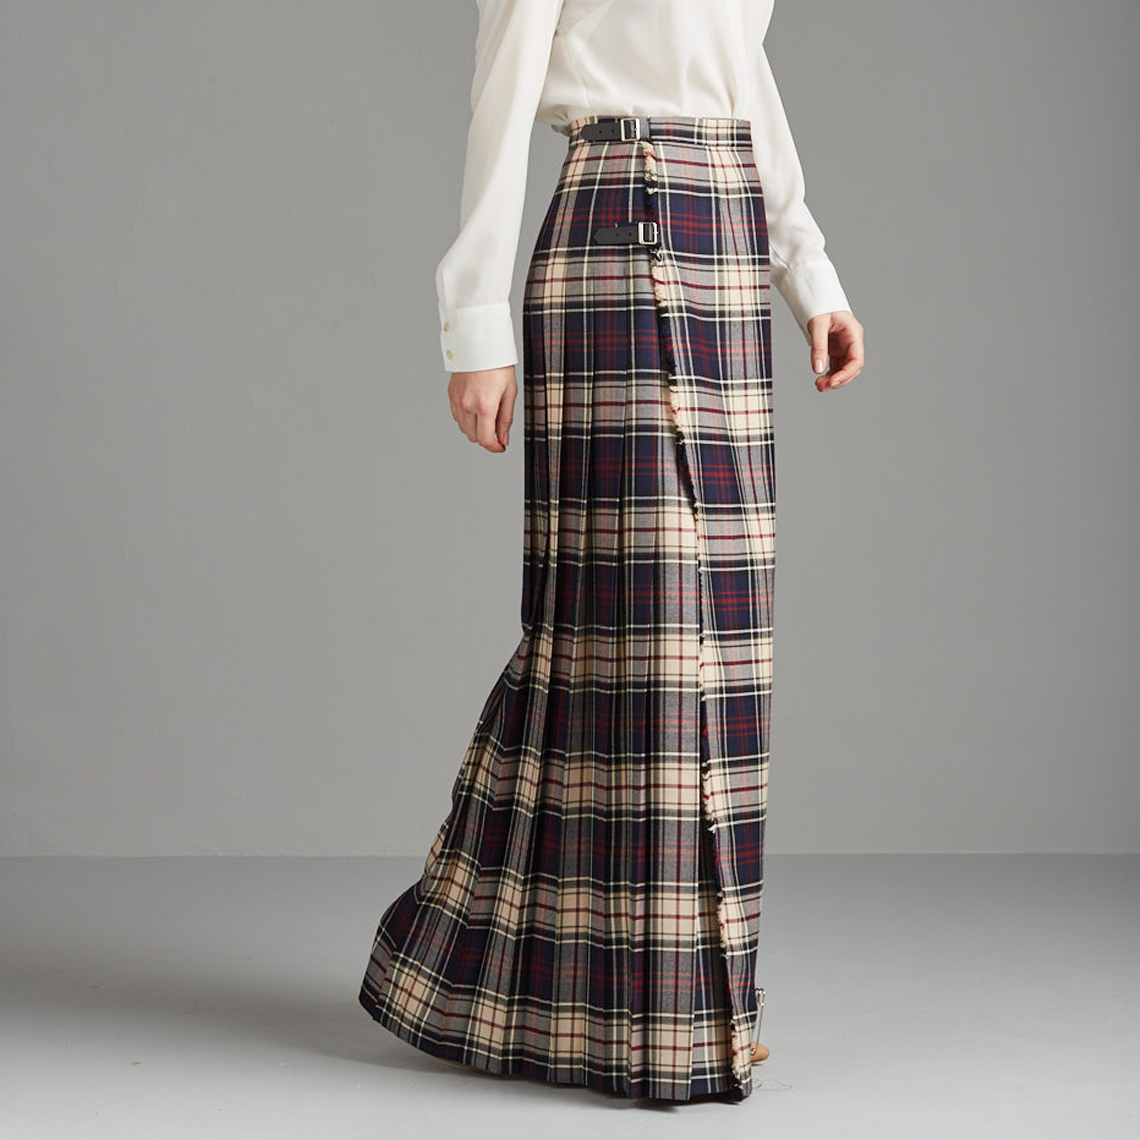 d35e073284bf Kinloch Anderson: Contemporary or Classic - The Kilted Skirt | Milled